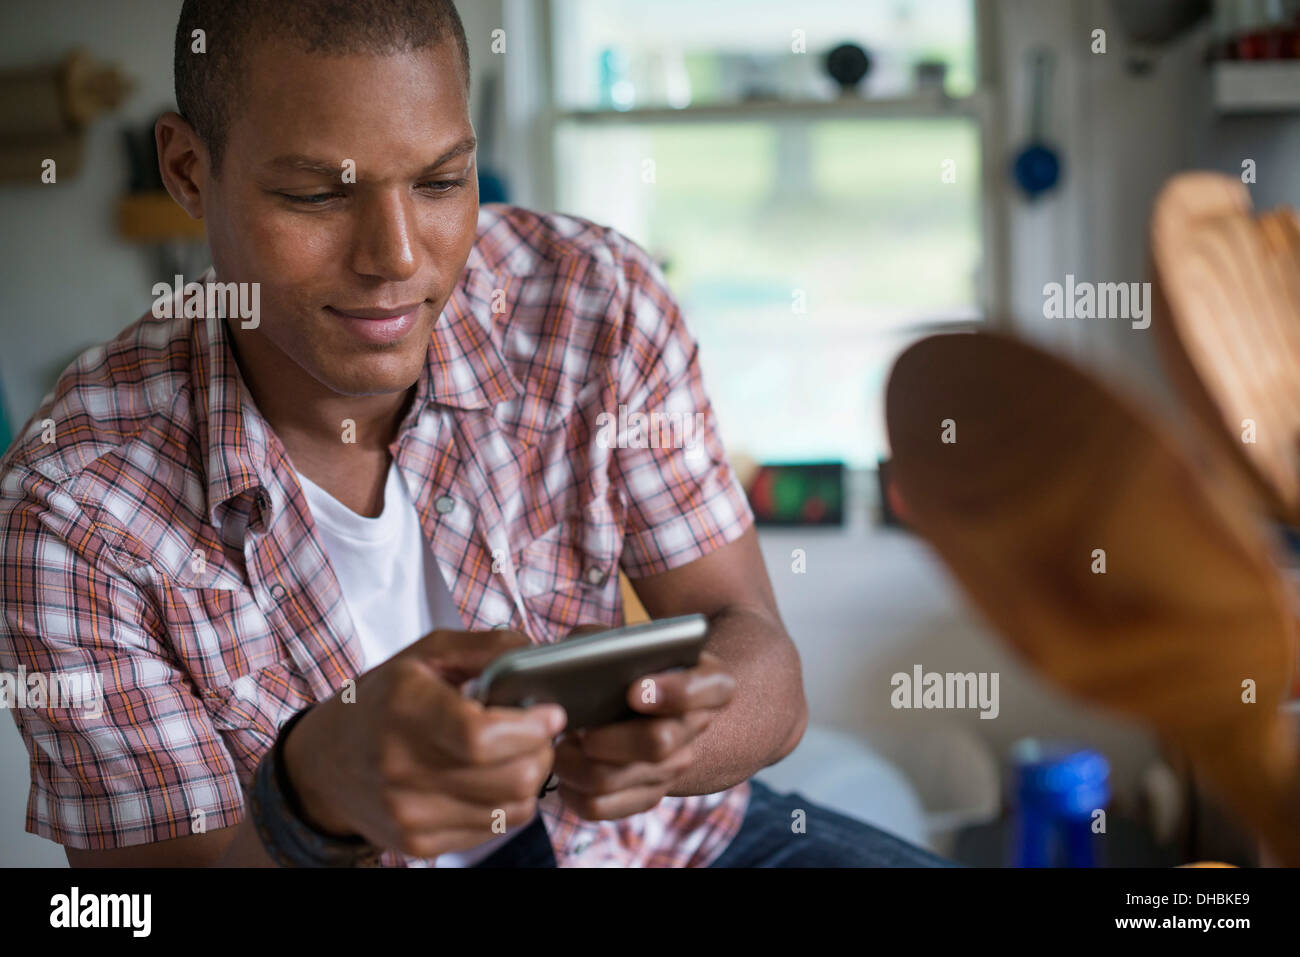 A man in a kitchen, using a digital tablet. - Stock Image